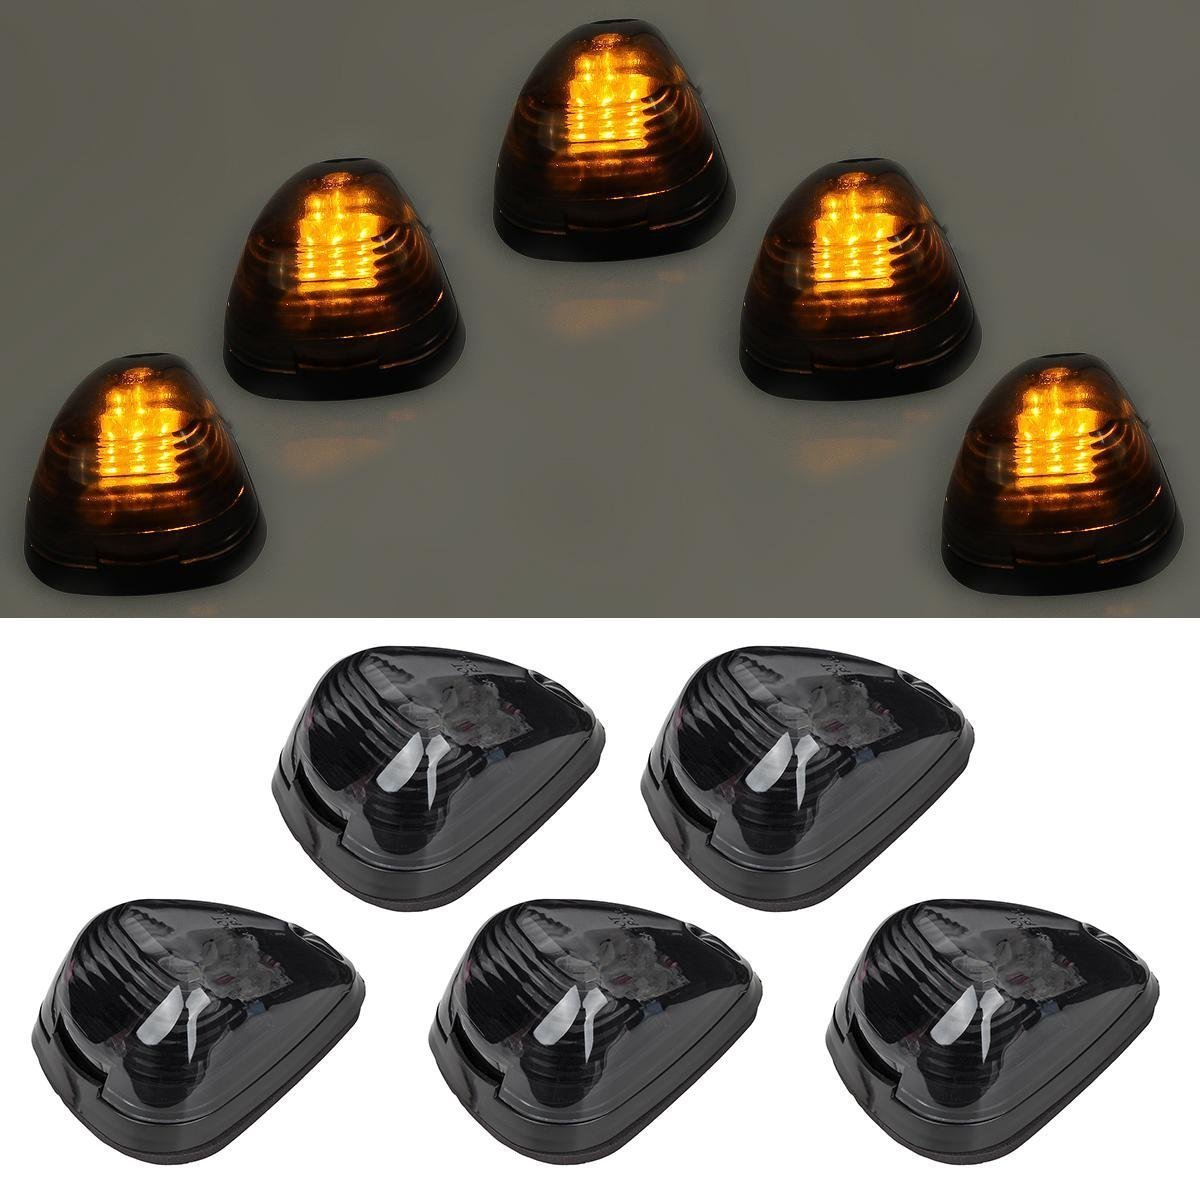 5pcs Black Smoked Lens Amber LED Cab Roof Top Marker Lamp Clearance Running Light For 1999-2016 Ford E/F (Smoked Lens & Amber LED)